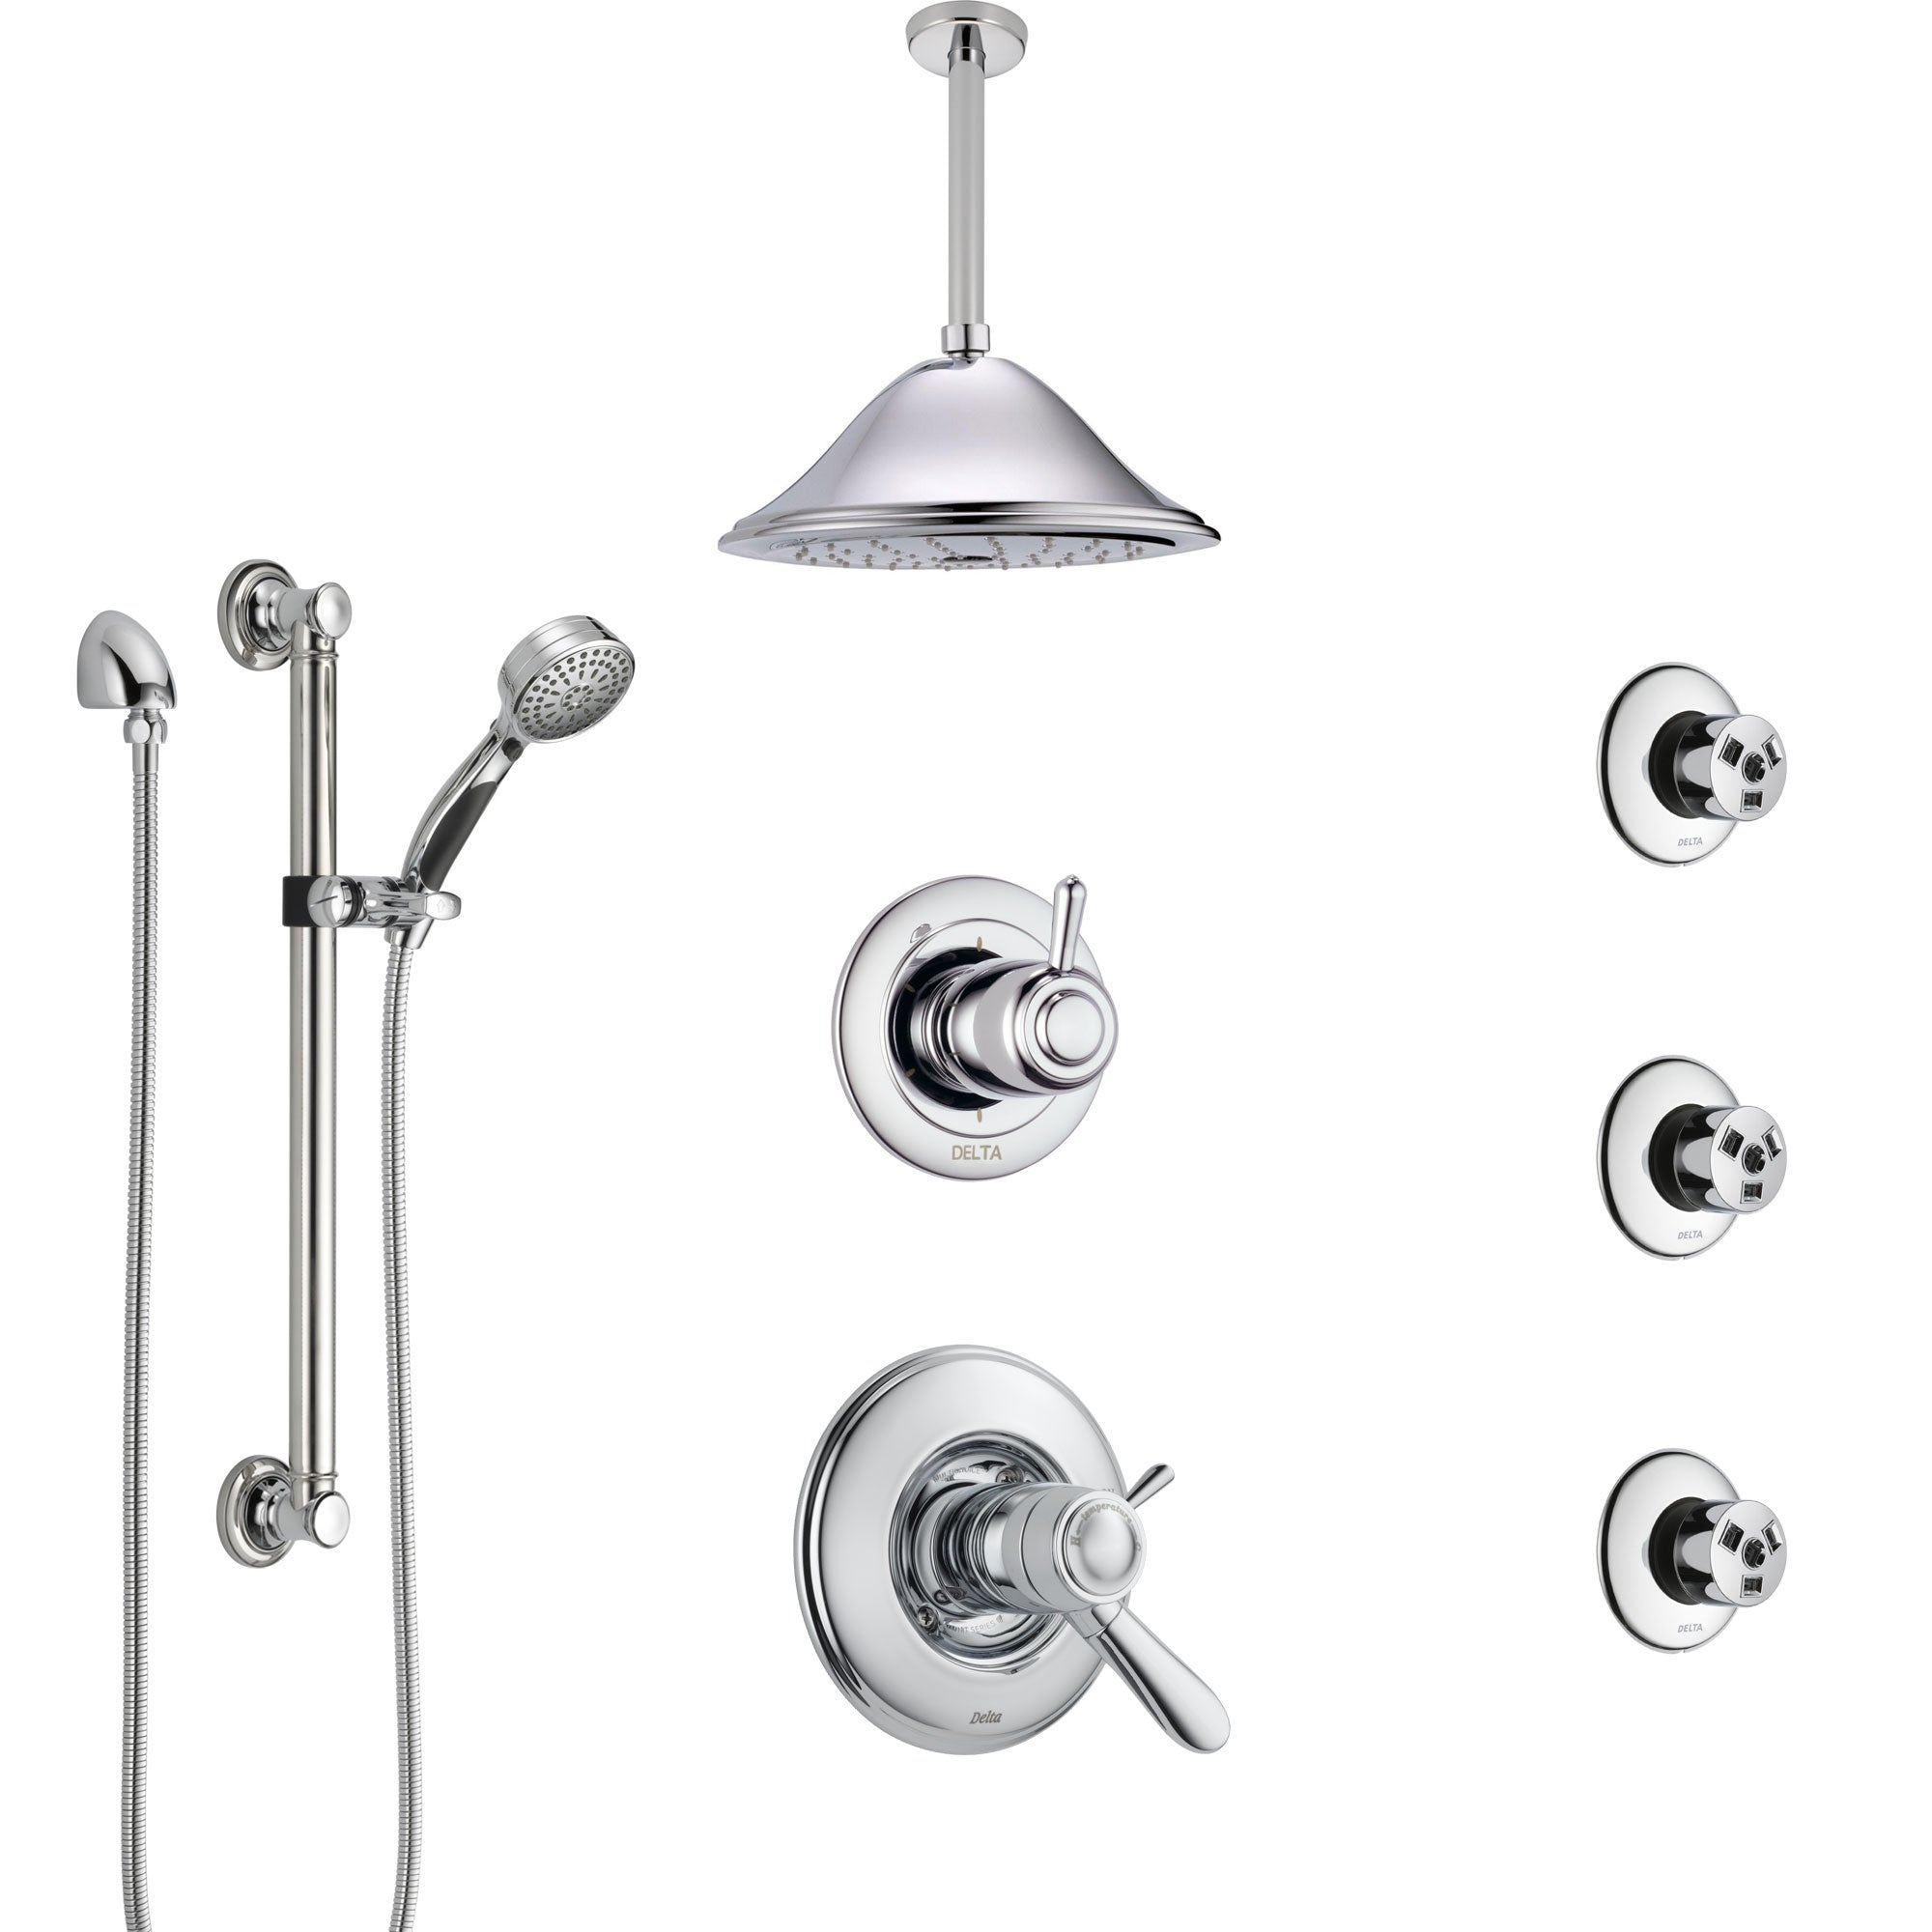 Delta Lahara Chrome Shower System with Dual Thermostatic Control, Diverter, Ceiling Showerhead, 3 Body Sprays, and Grab Bar Hand Shower SS17T3823